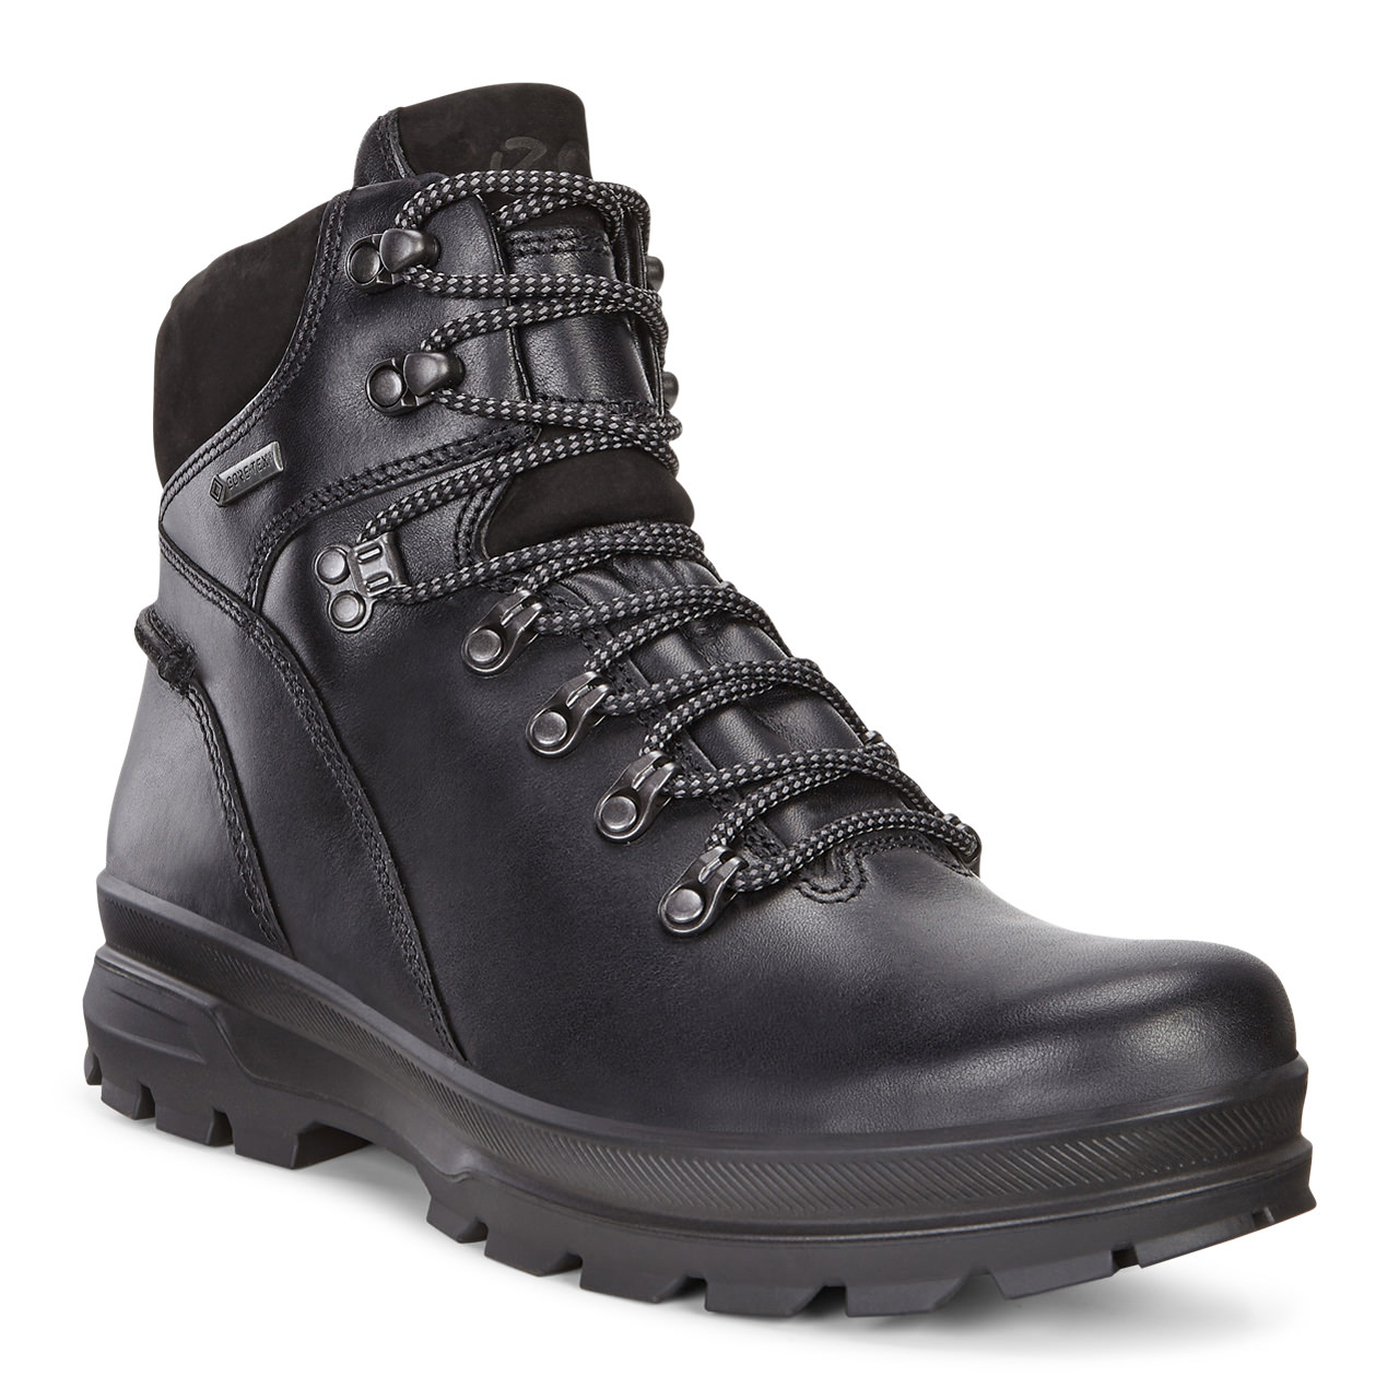 6fbe4cbcf027 ECCO Mens Rugged Track GTX High Top